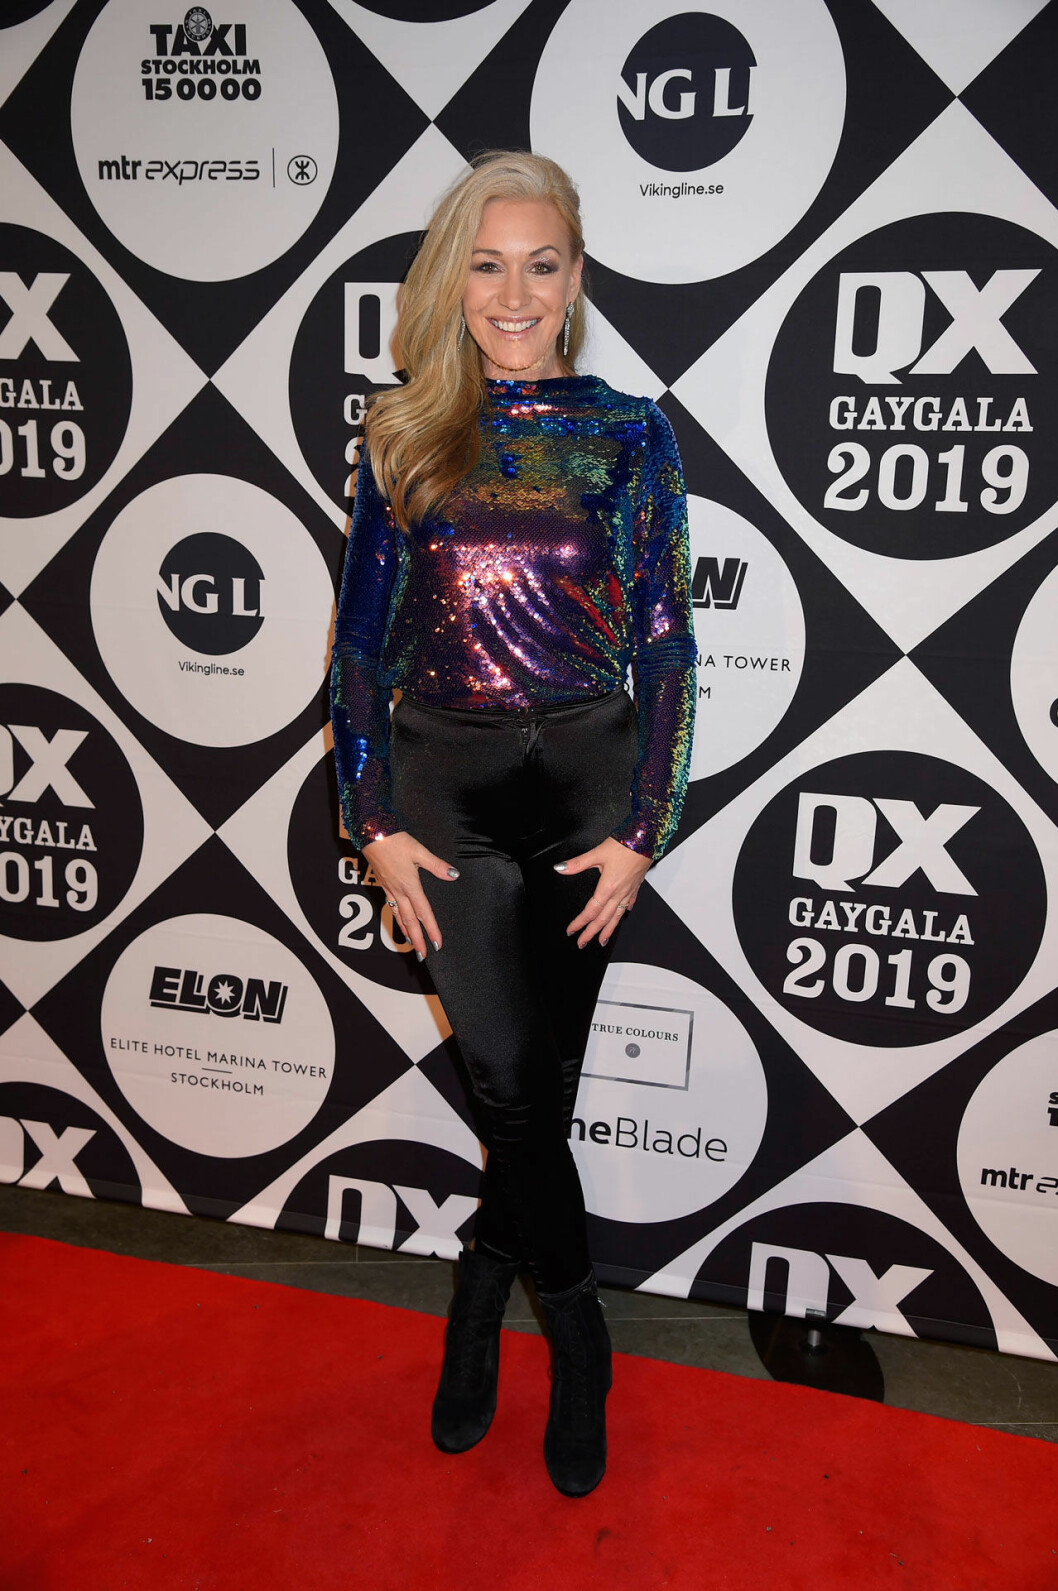 Jessica Andersson på QX-galan 2019